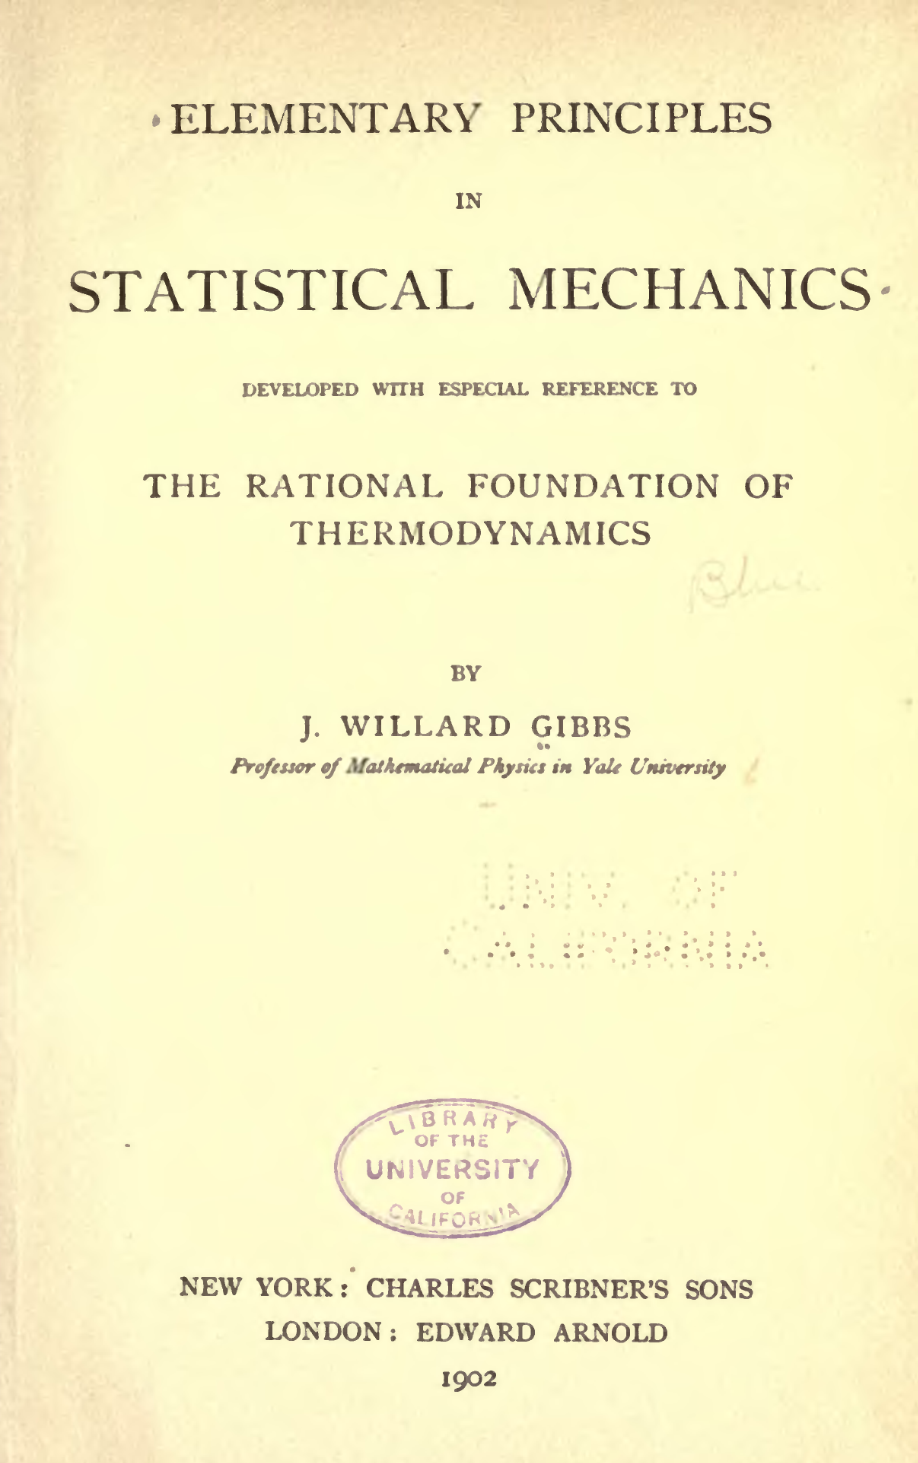 Churchs thesis and principles for mechanisms